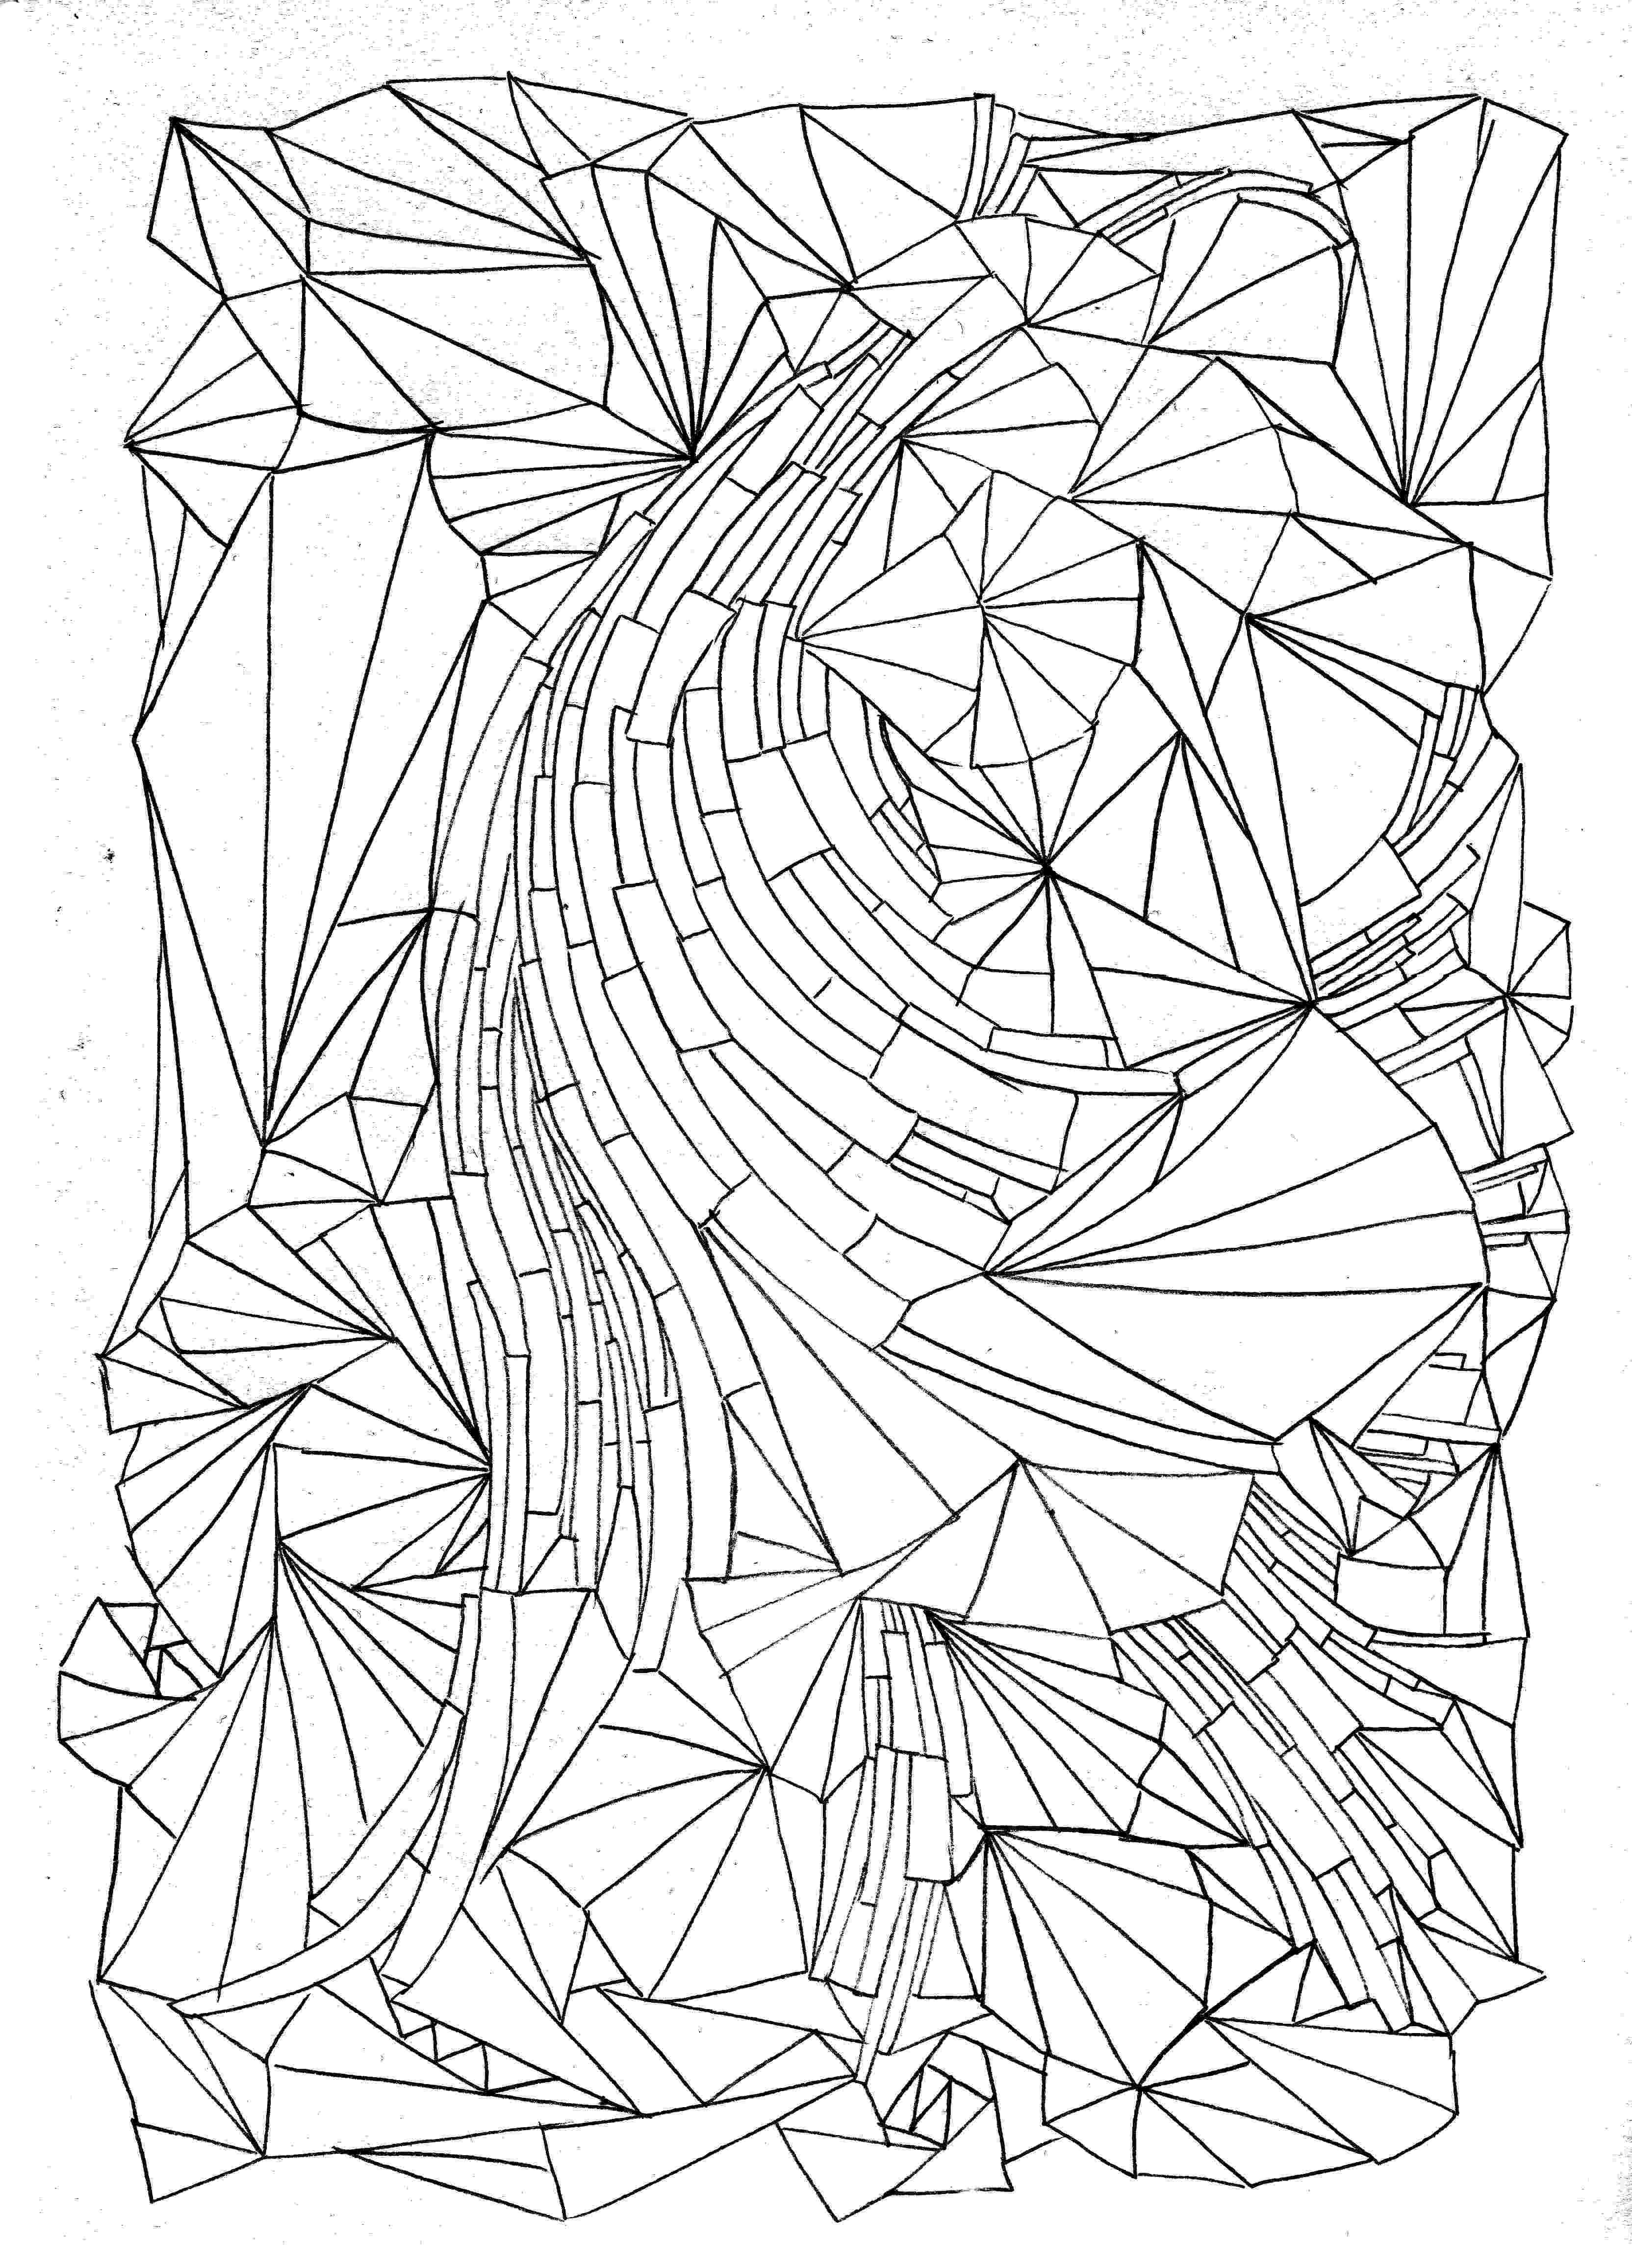 pattern coloring pages for adults 14 best images about adult coloring pages on pinterest pattern coloring pages adults for